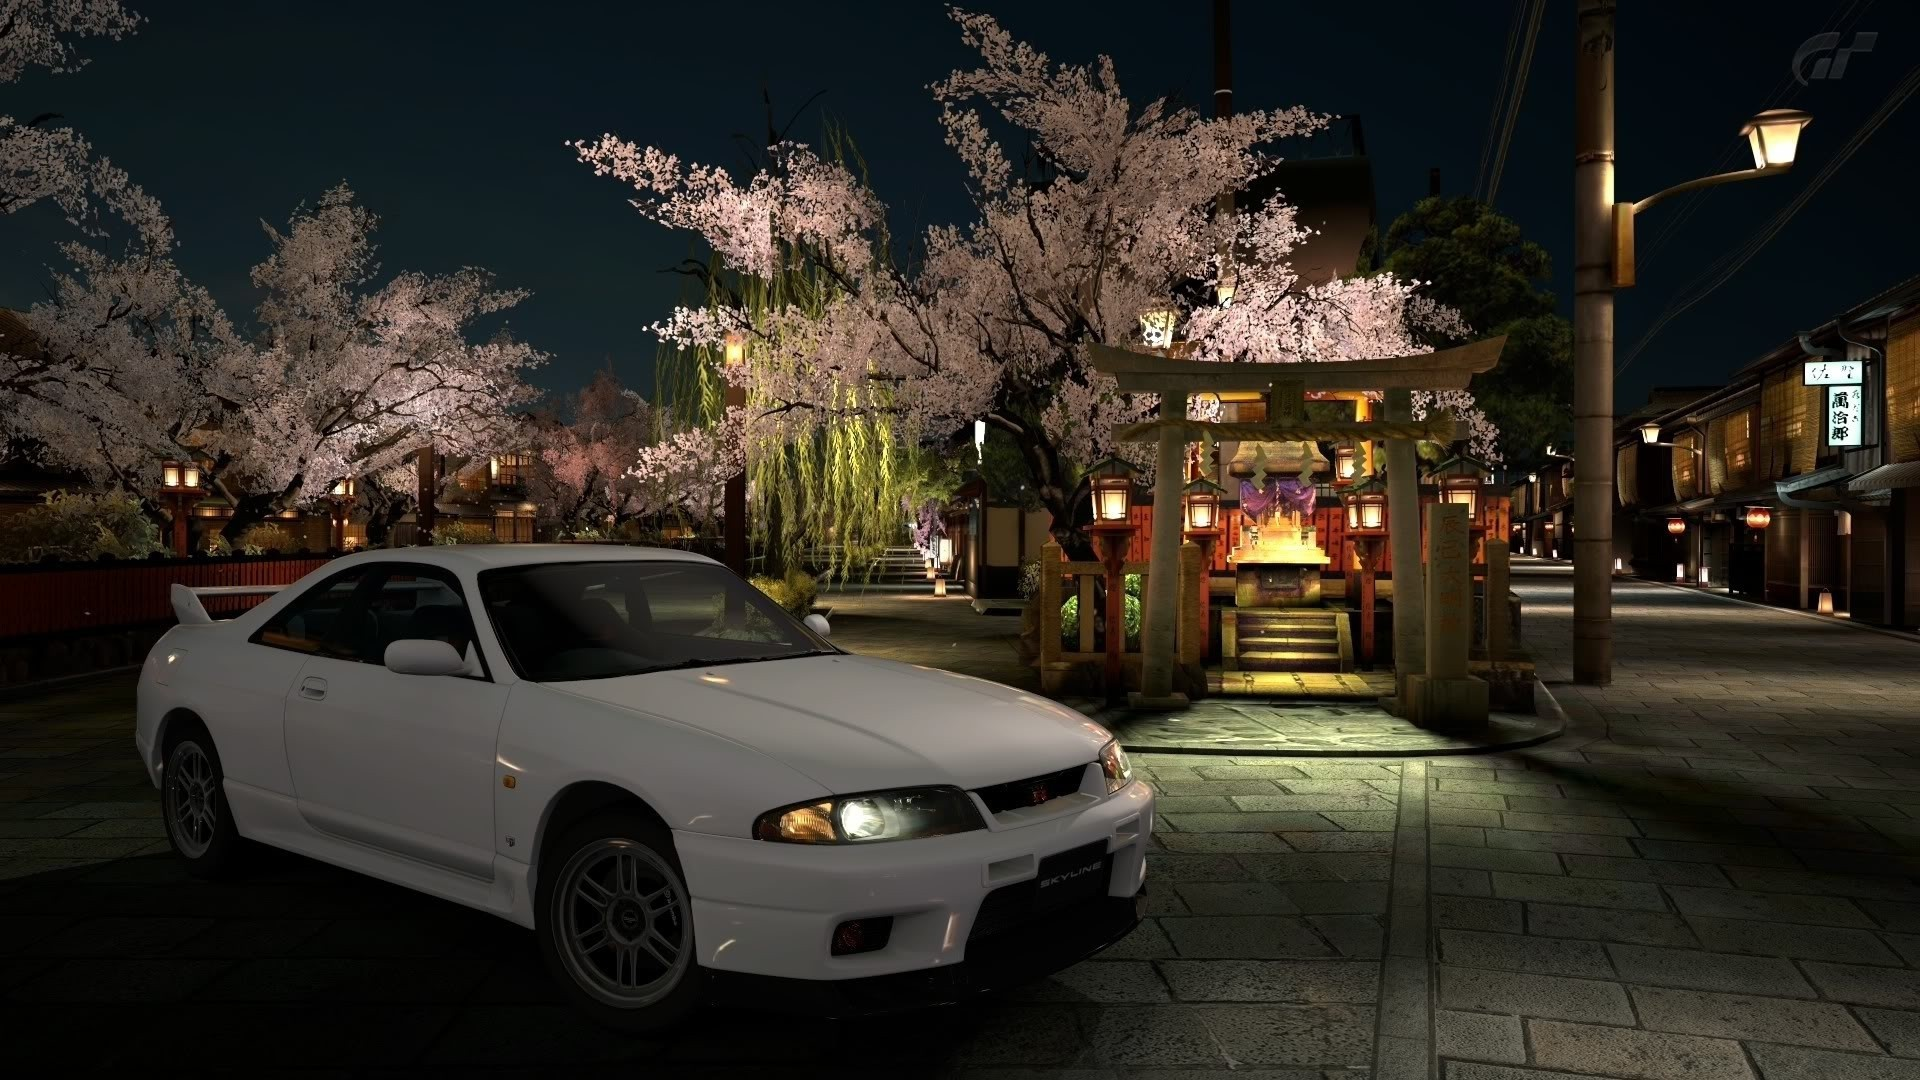 R33 Gtr Wallpapers 66 Background Pictures